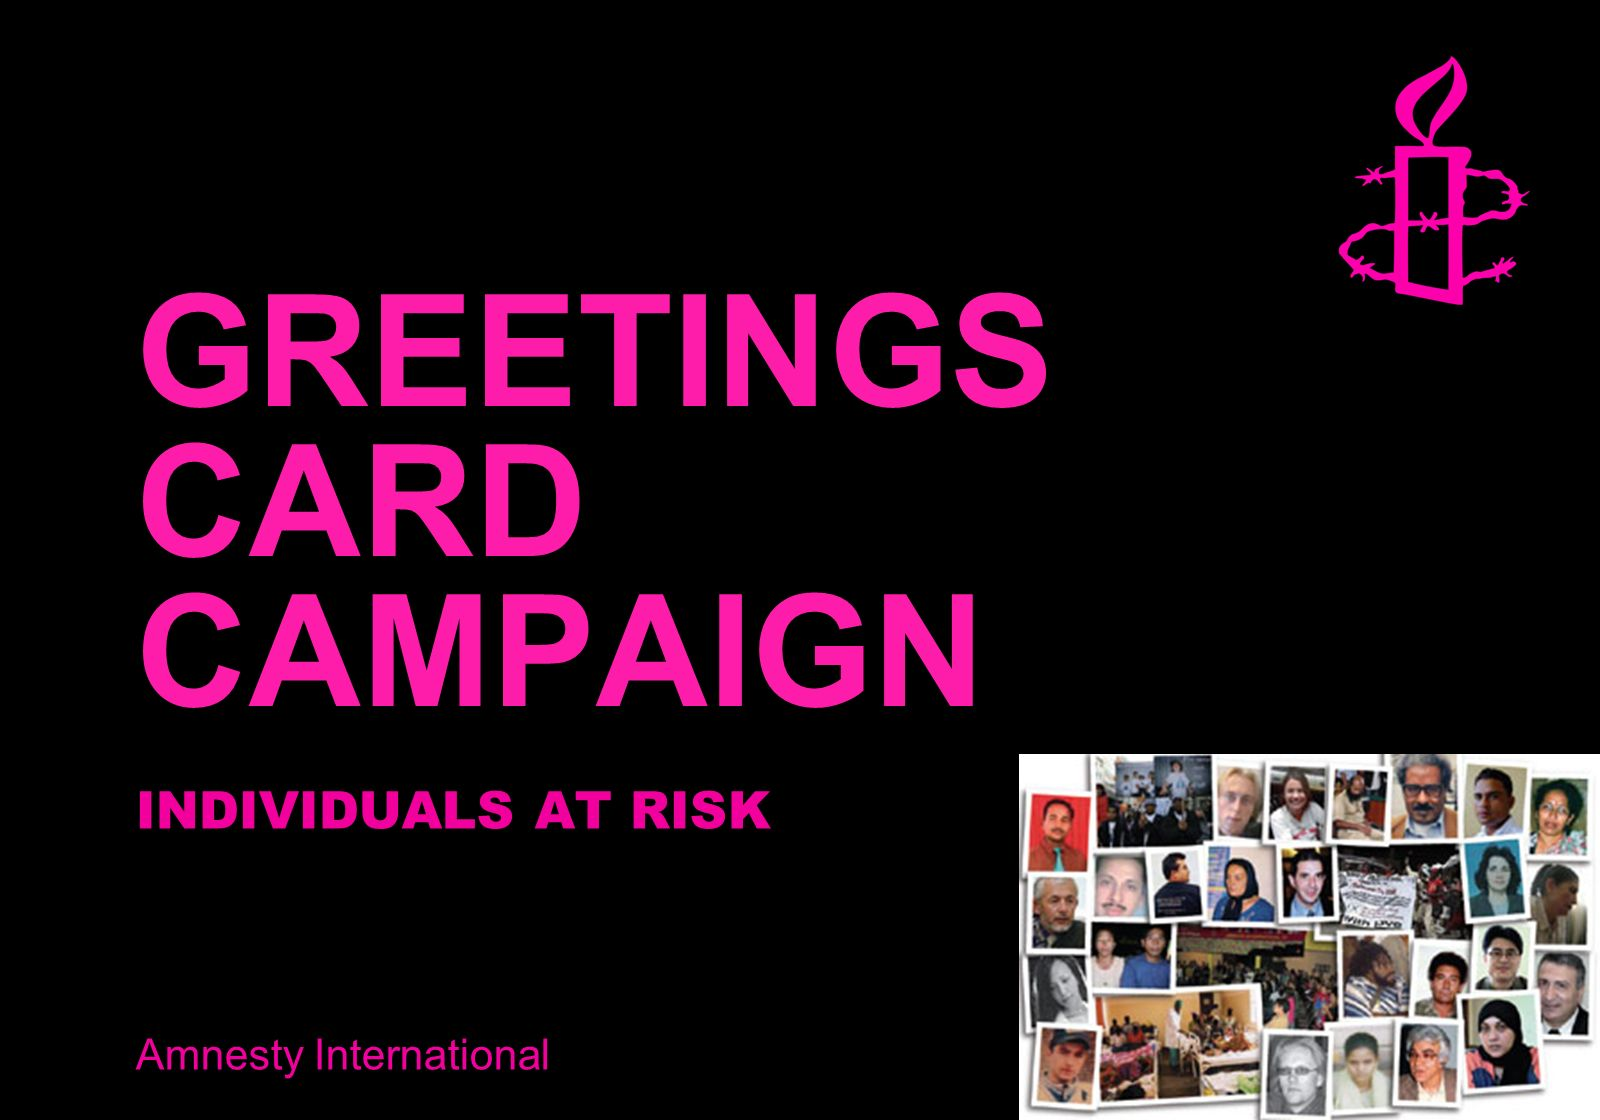 Amnesty International GREETINGS CARD CAMPAIGN INDIVIDUALS AT RISK